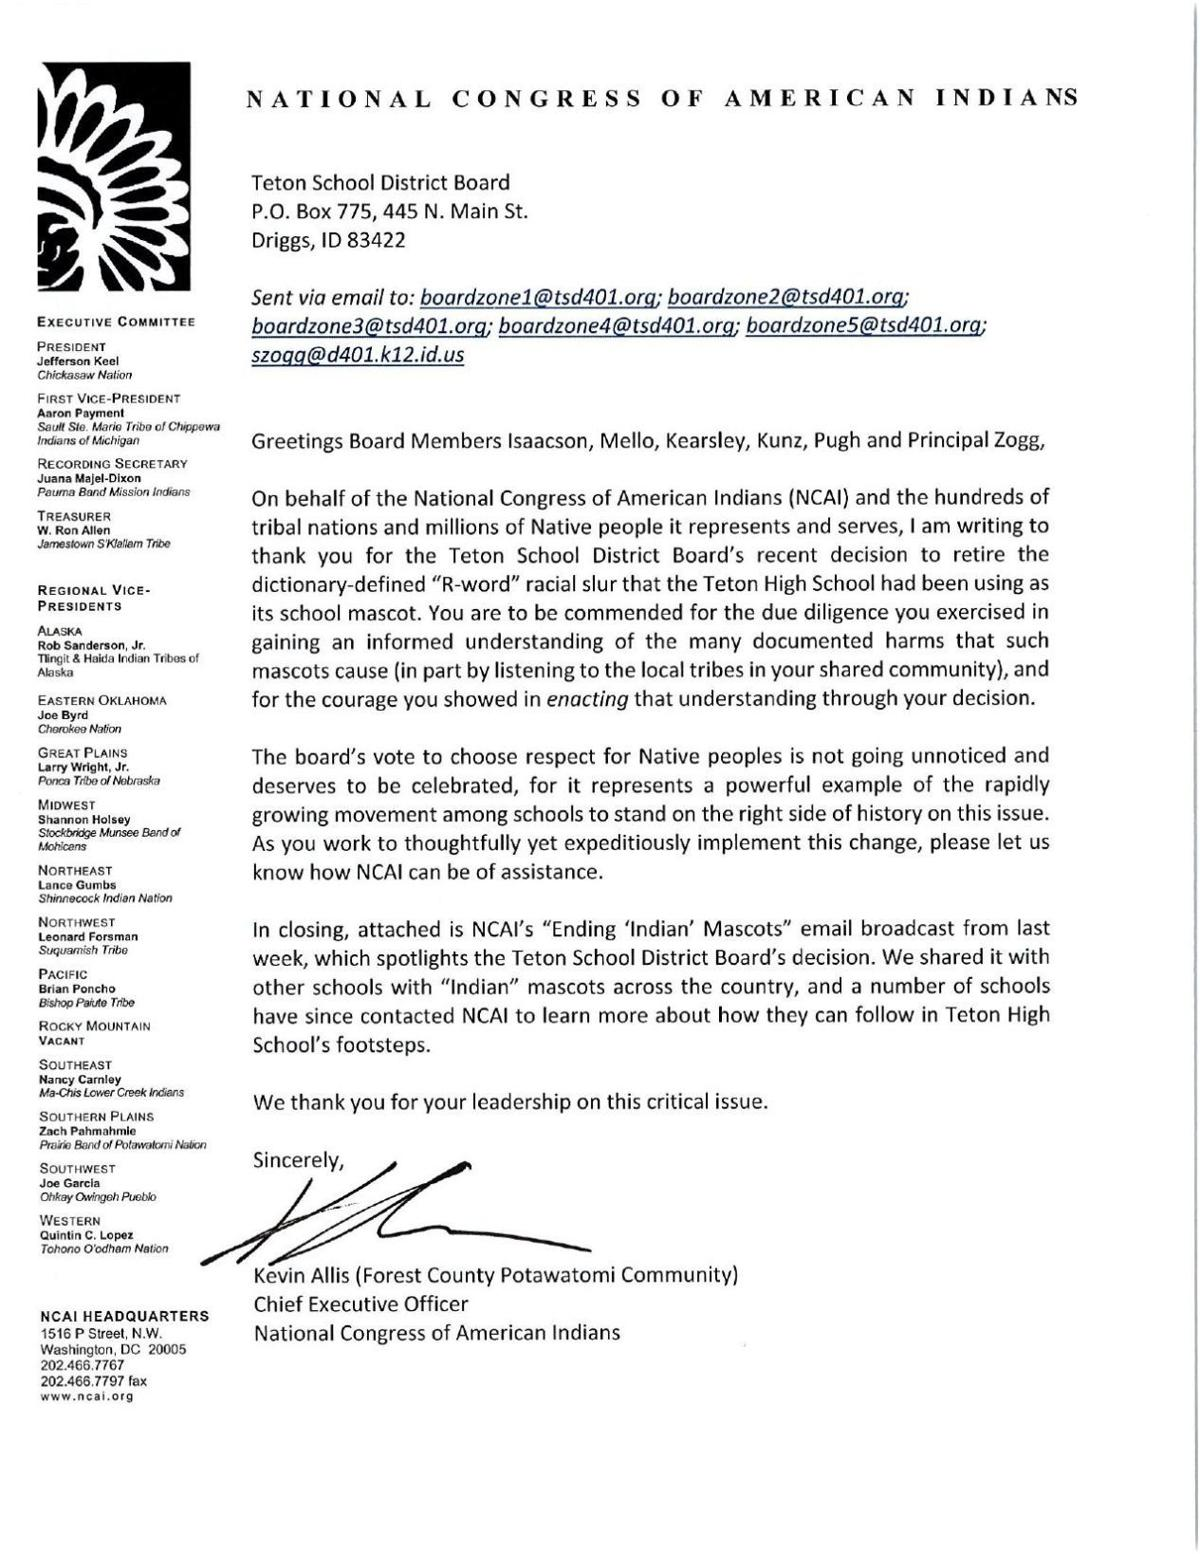 NCAI Letter to Teton School District Board 8-7-19.pdf